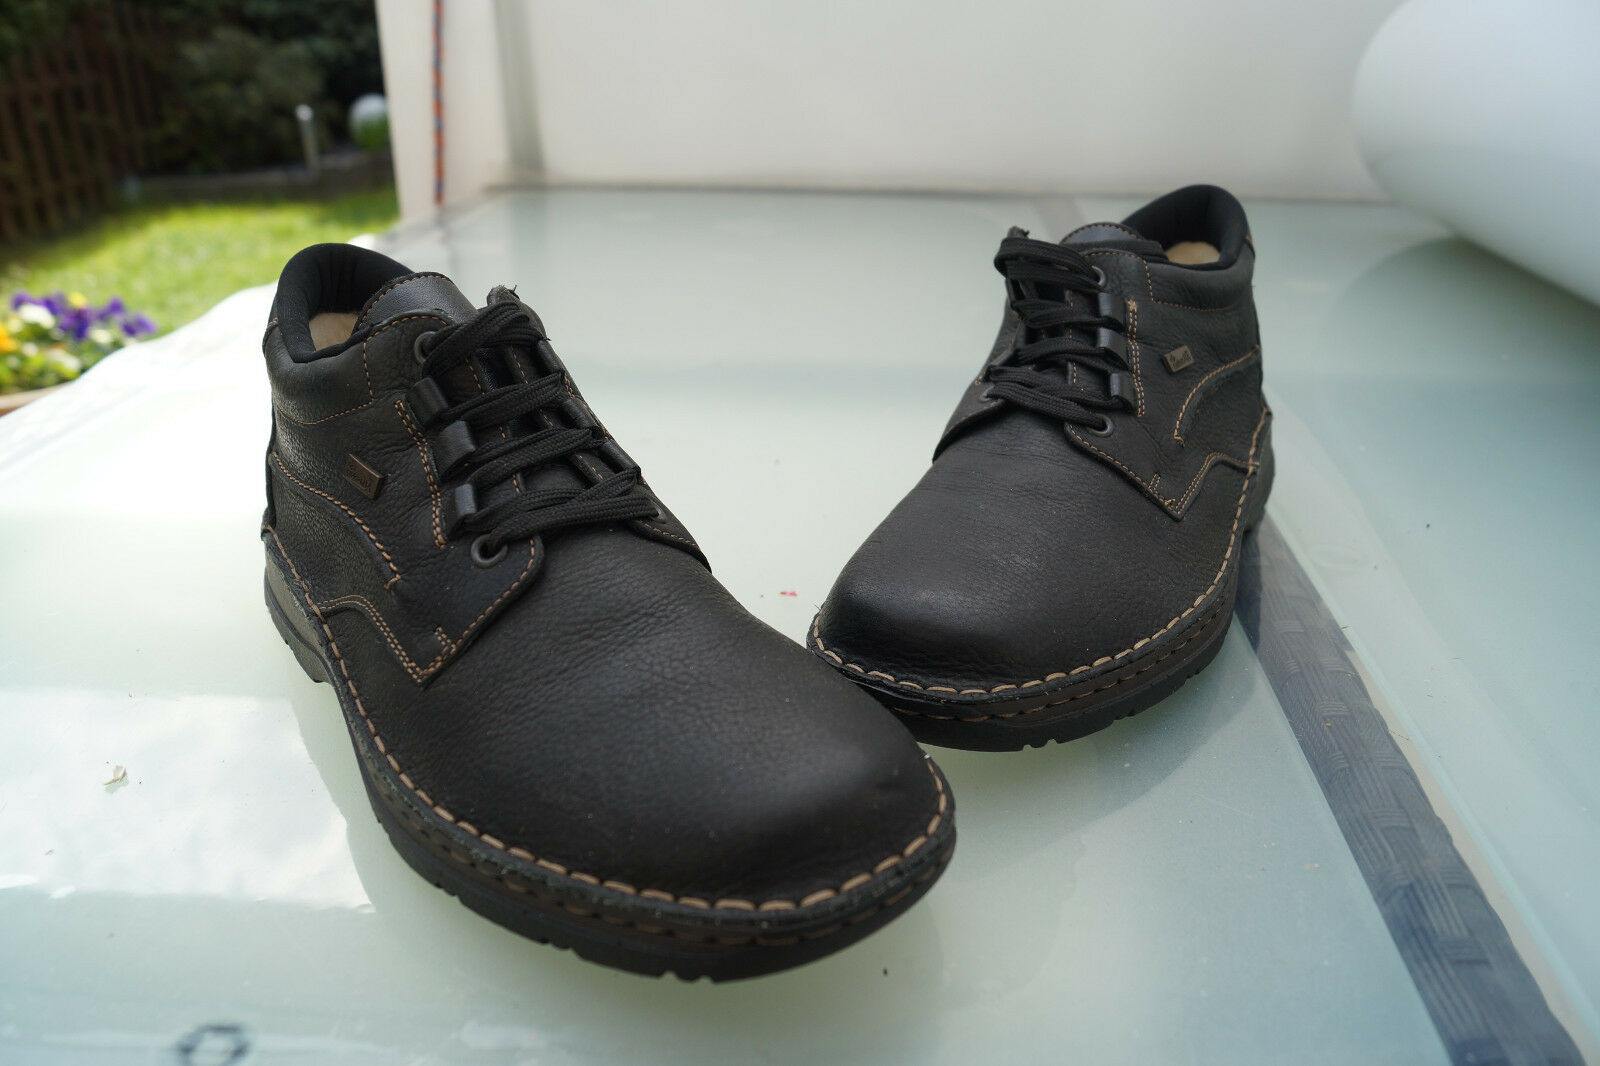 Rieker Riekertex Winter shoes Boots Lined Gr.41 Black Leather New